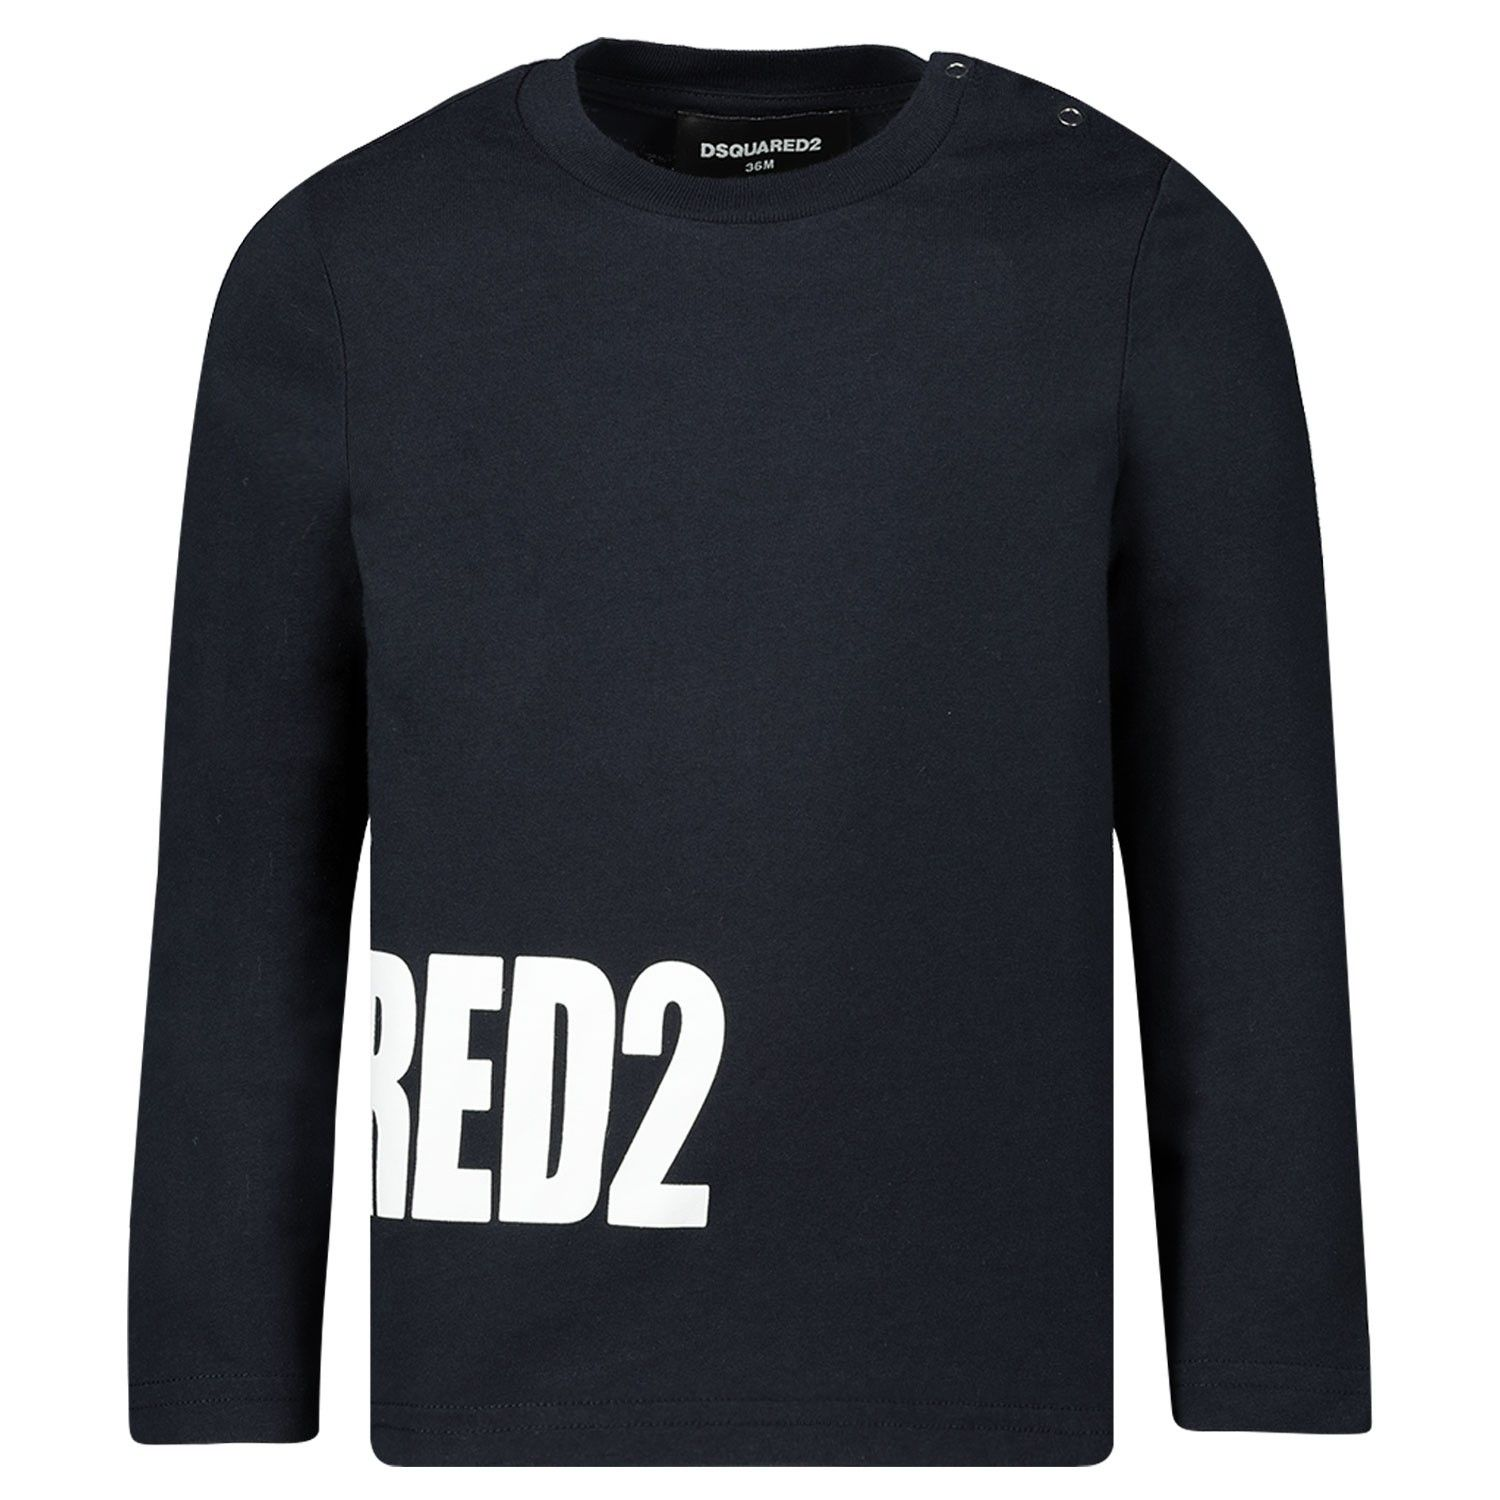 Picture of Dsquared2 DQ03ND baby shirt navy